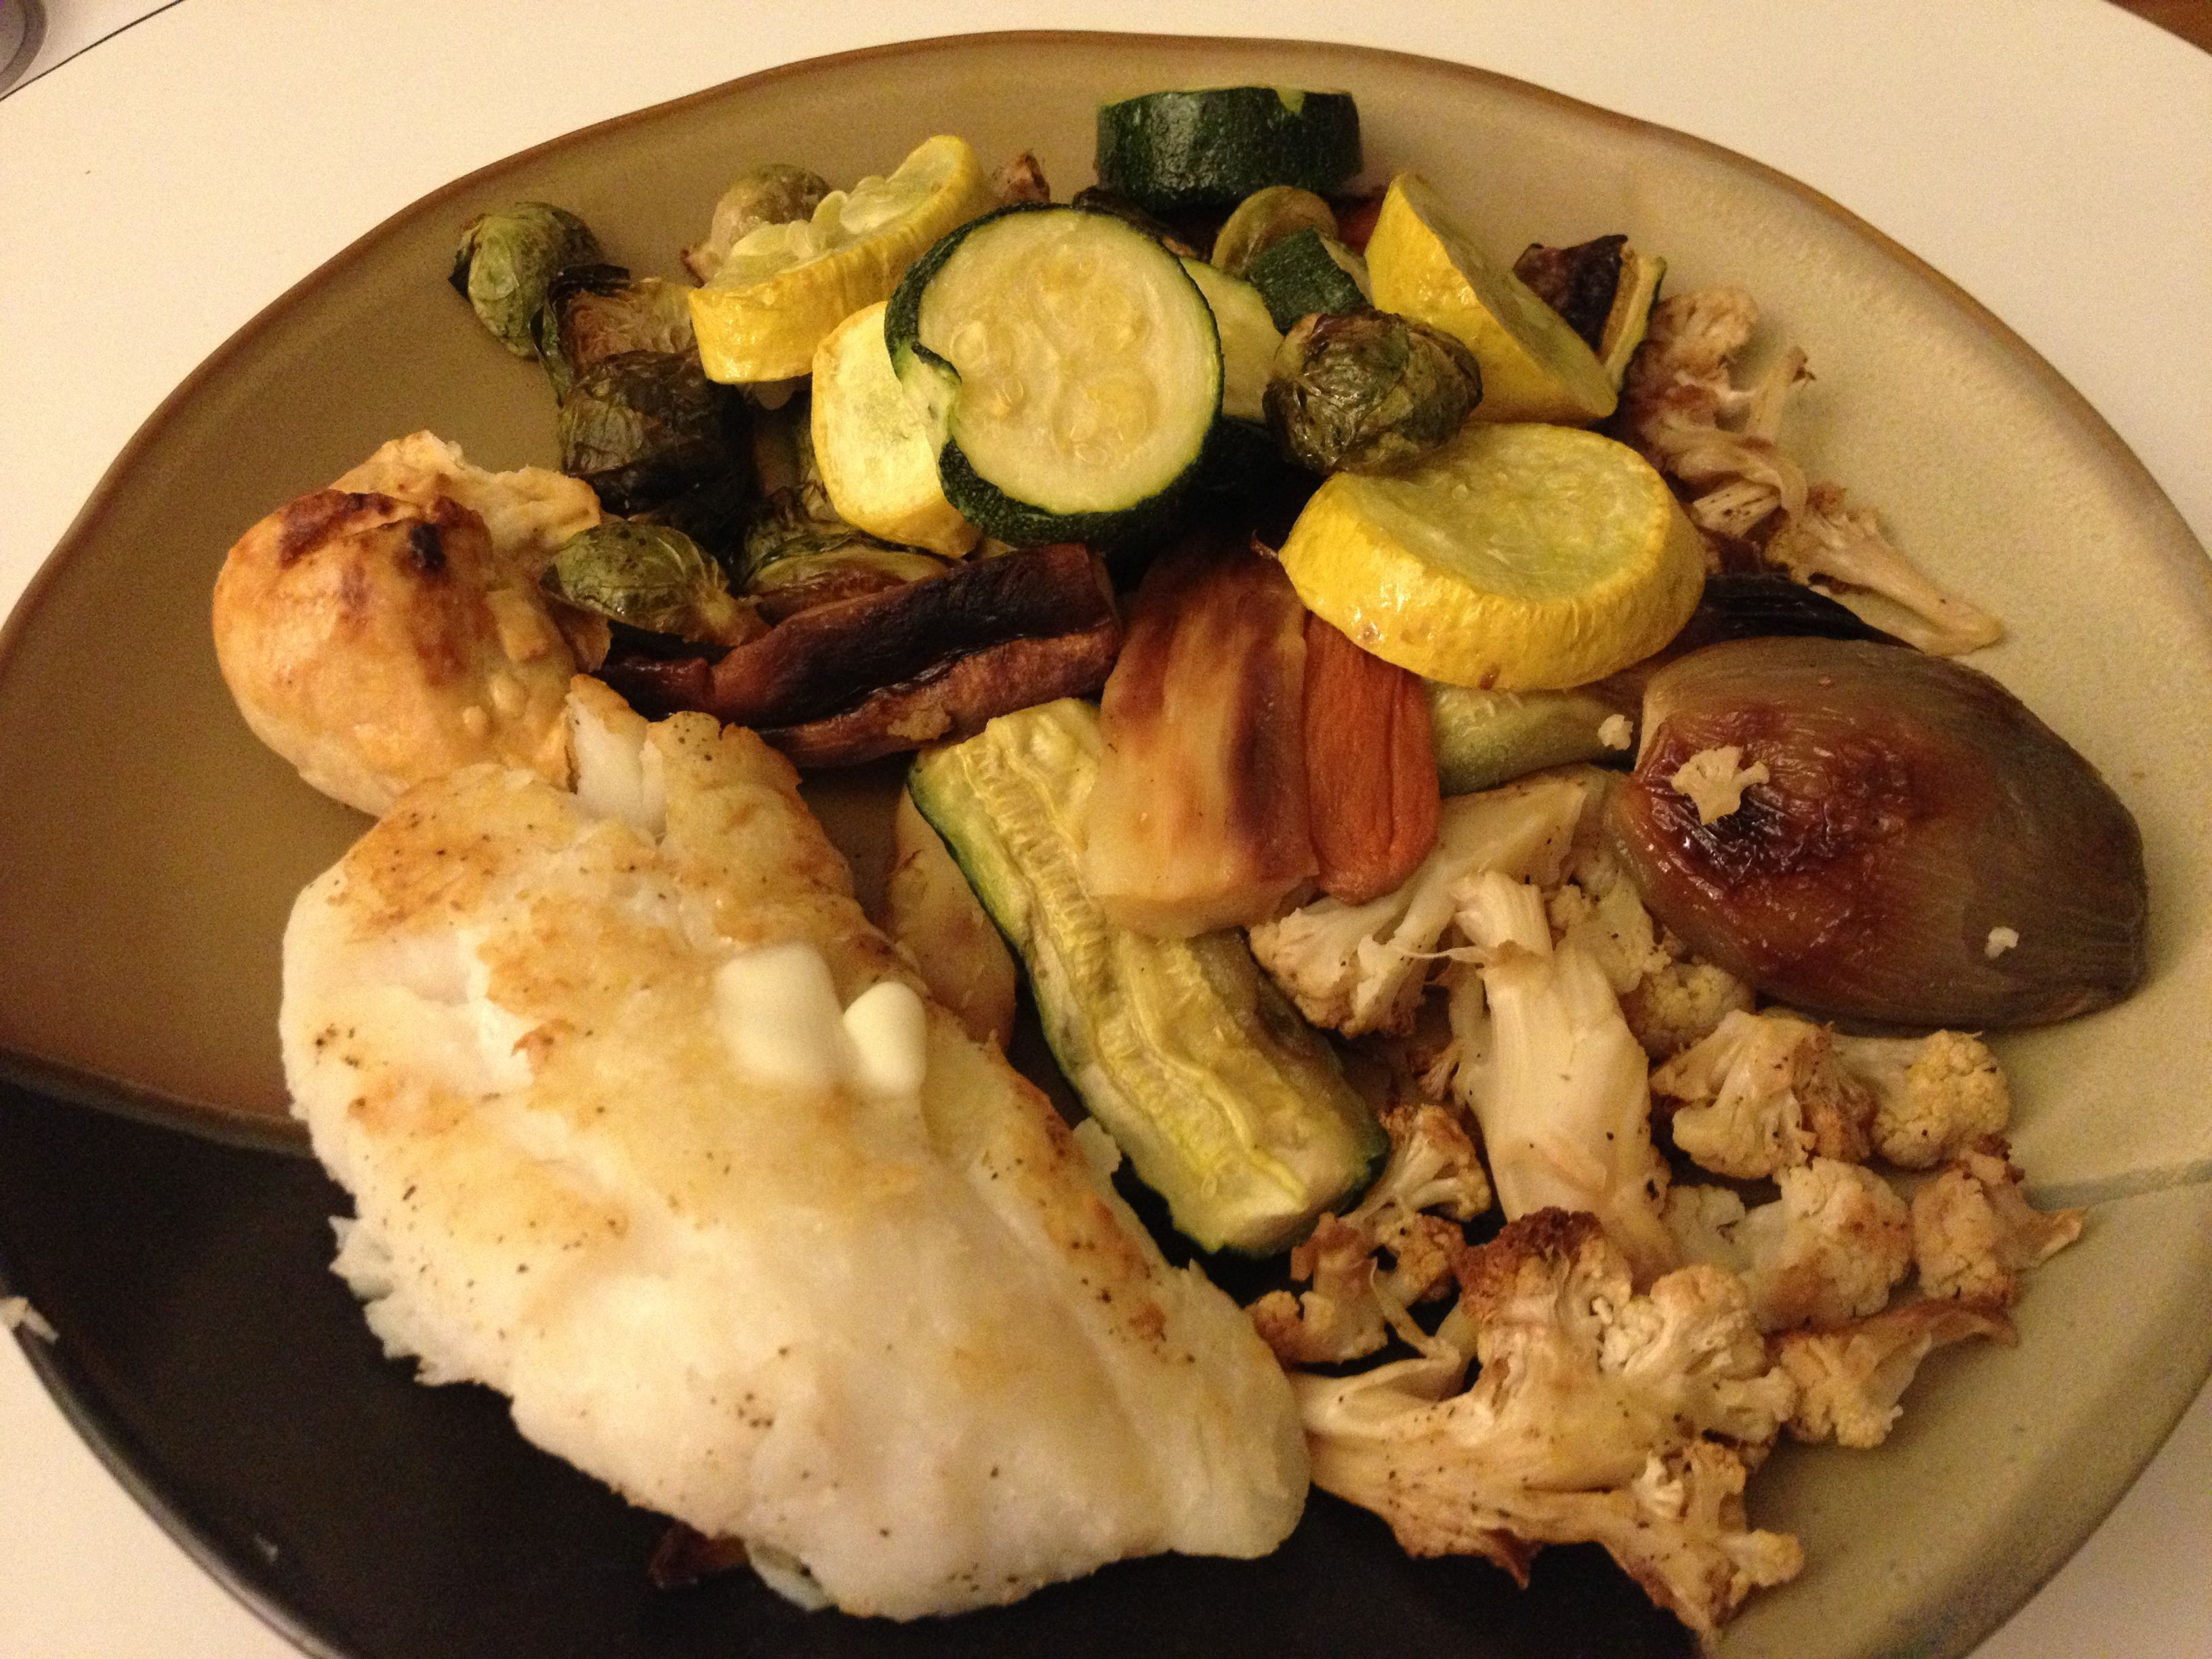 Cod and roasted veg